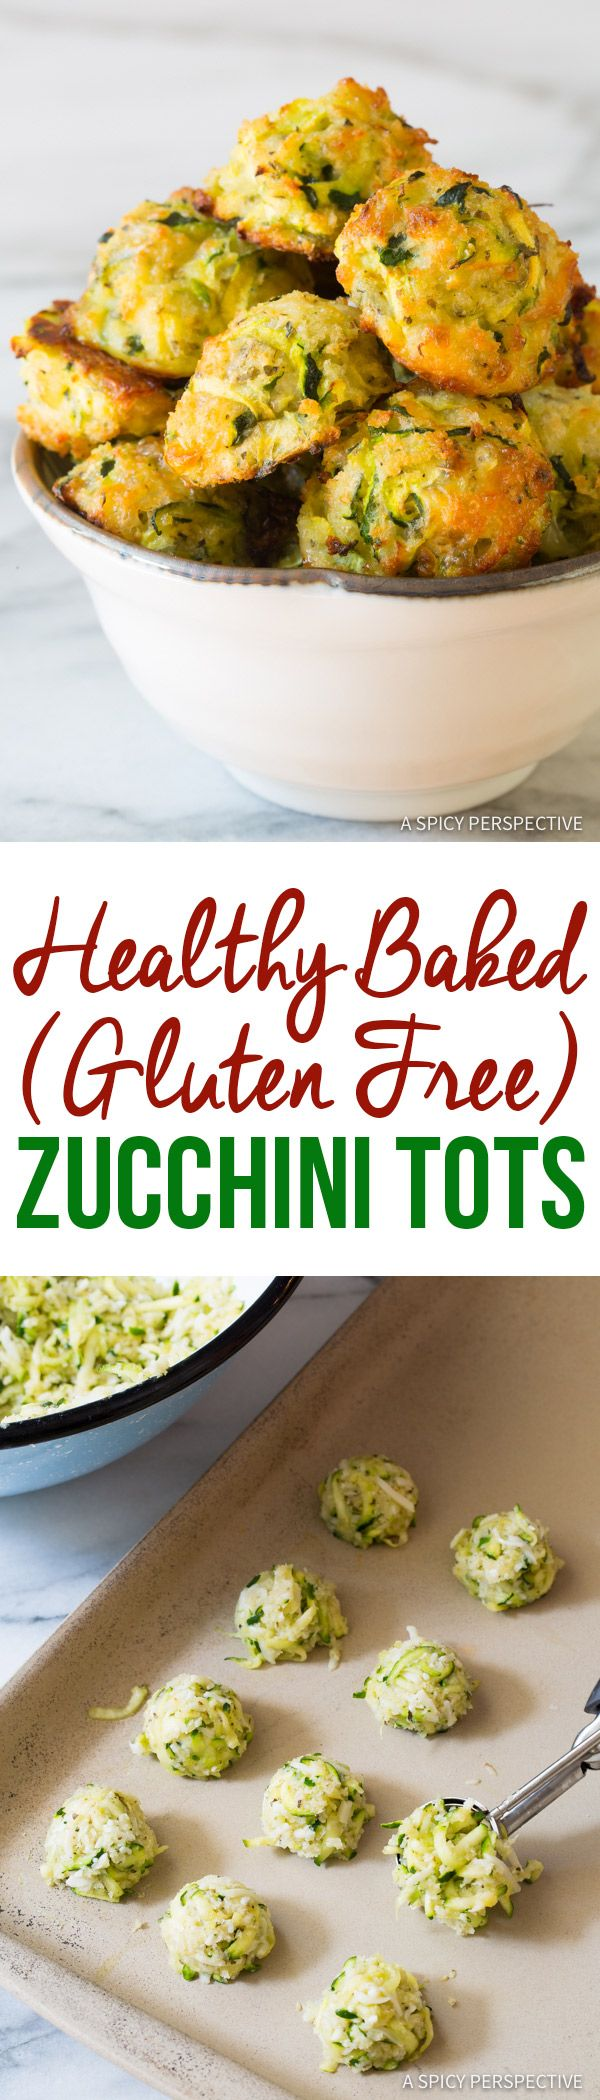 6-Ingredient Healthy Baked Zucchini Tots (Gluten Free!) | ASpicyPerspective.com - I do a similar version baked in a tray and cut into thin slices. I can totally see this going down well as a party treat! Martina@stayathomestraggler